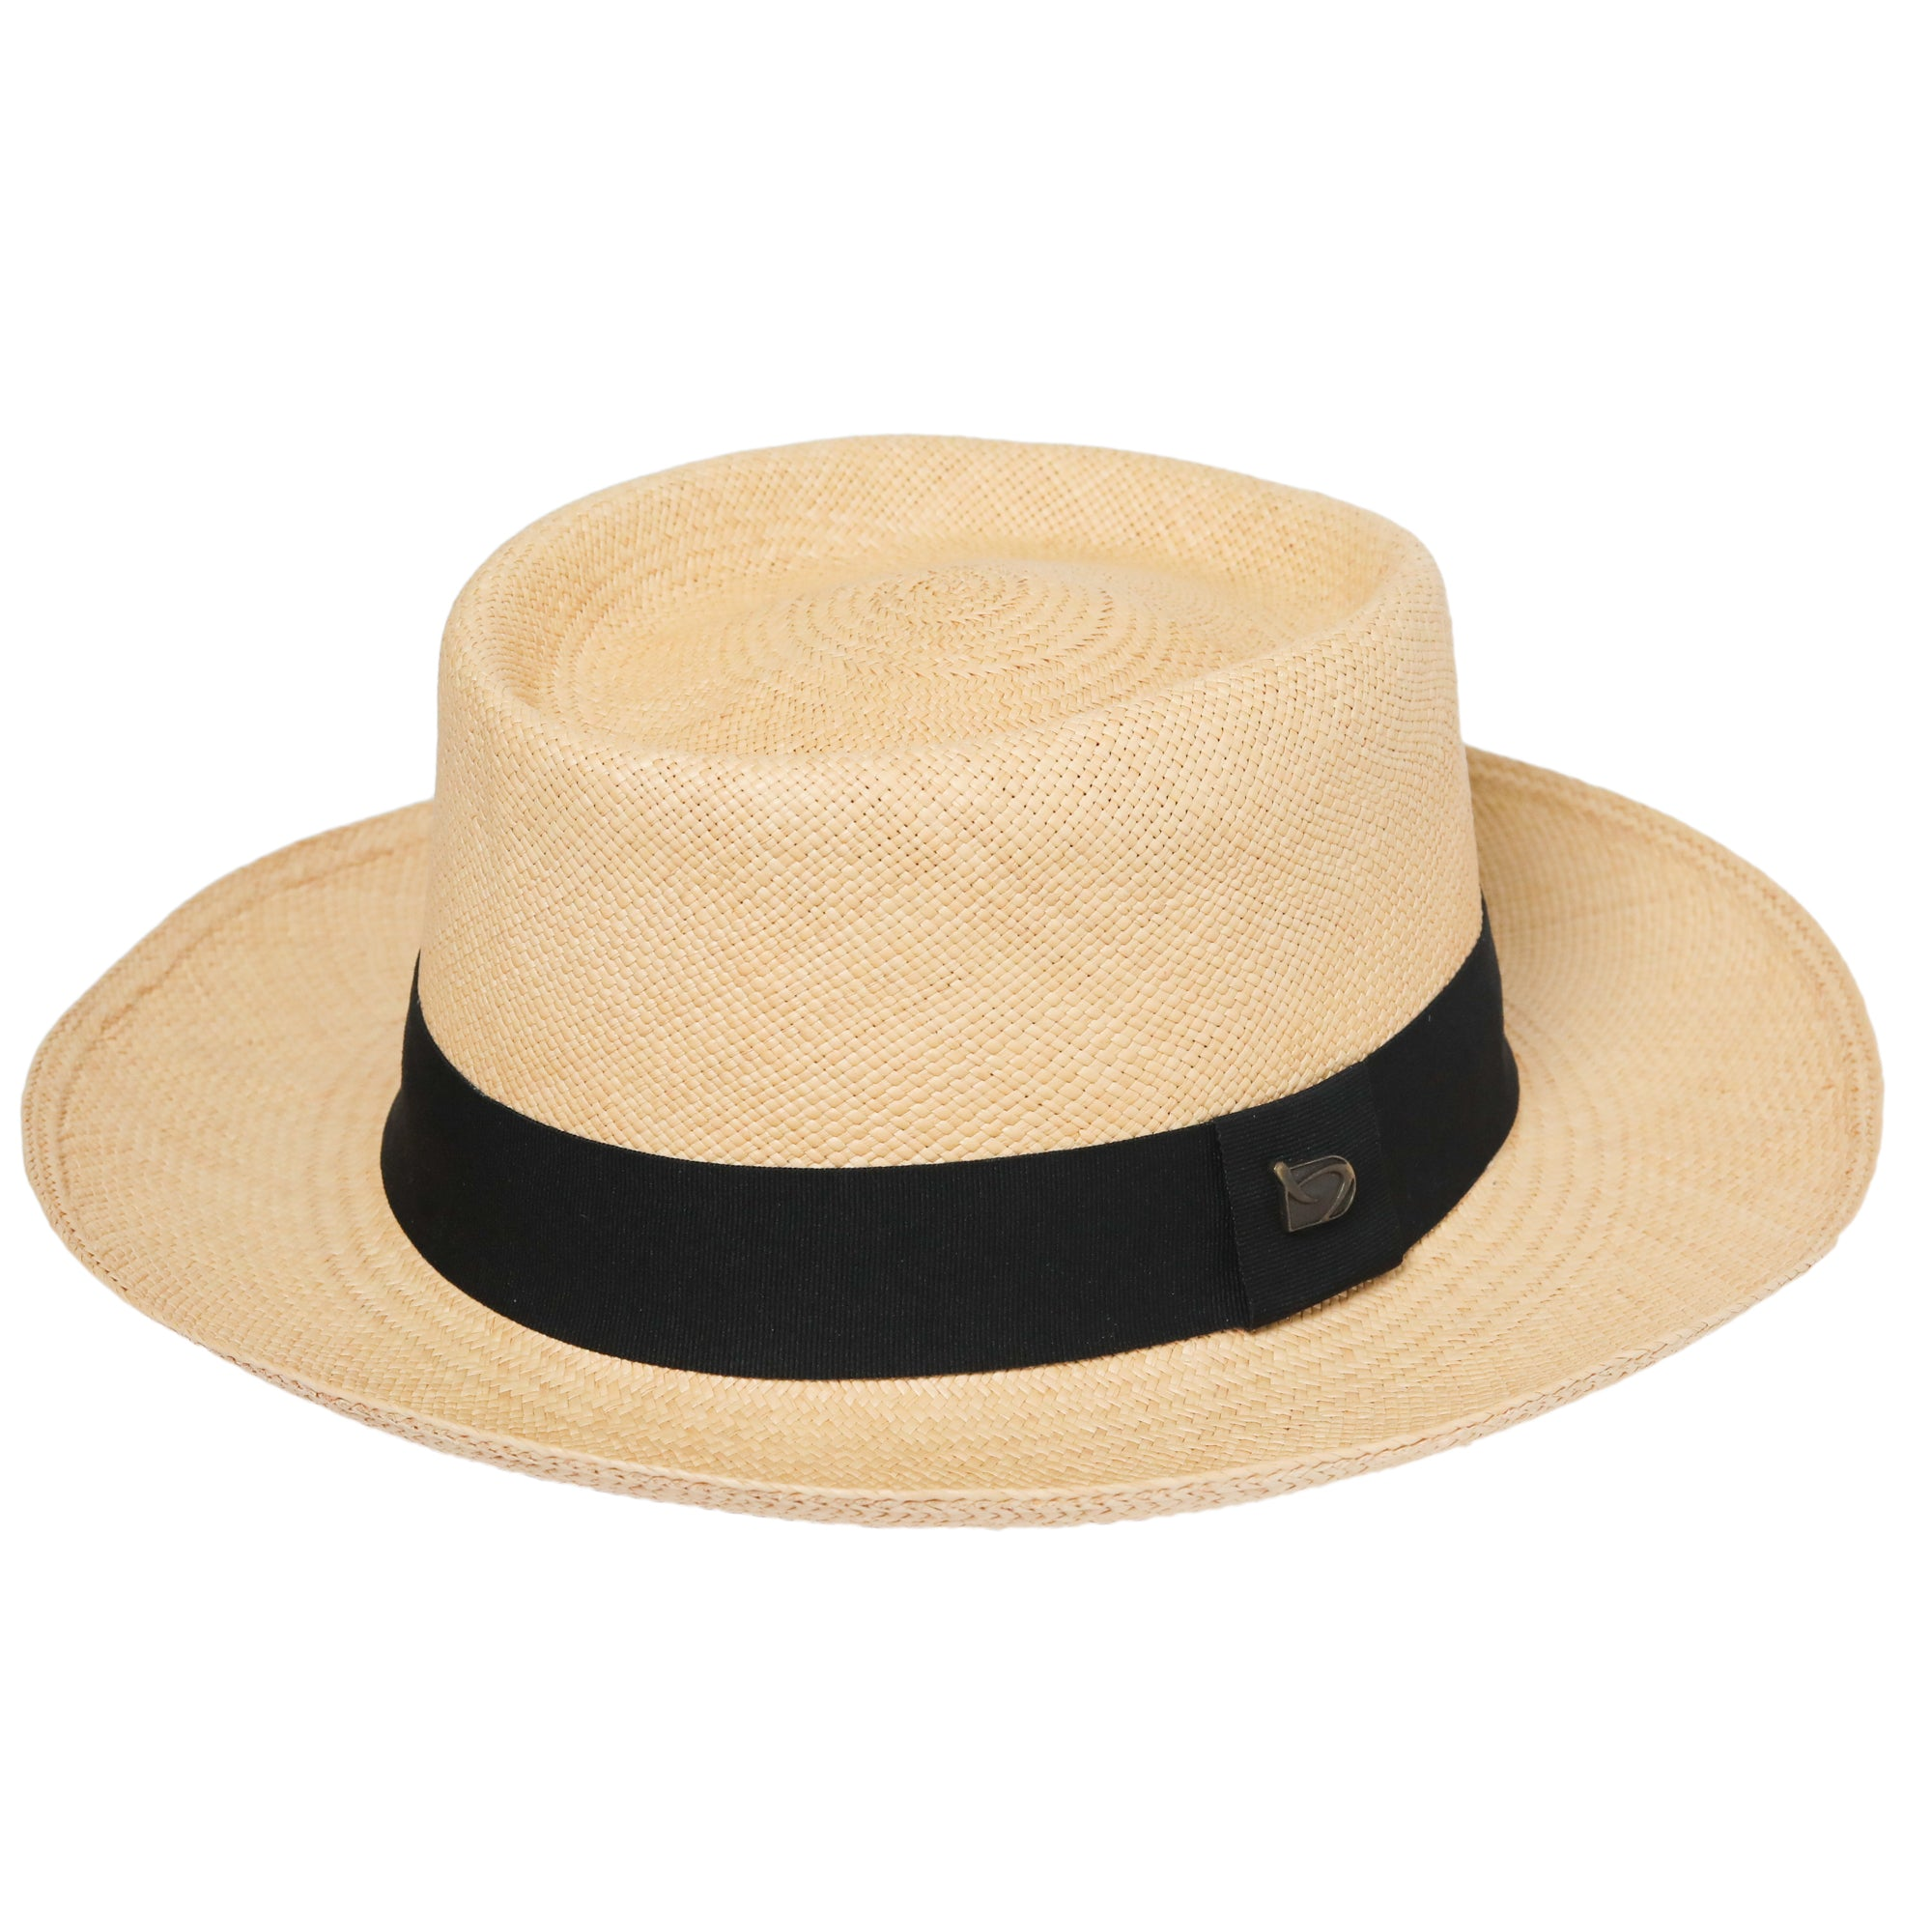 ON SALE The Dumont Panama Hat